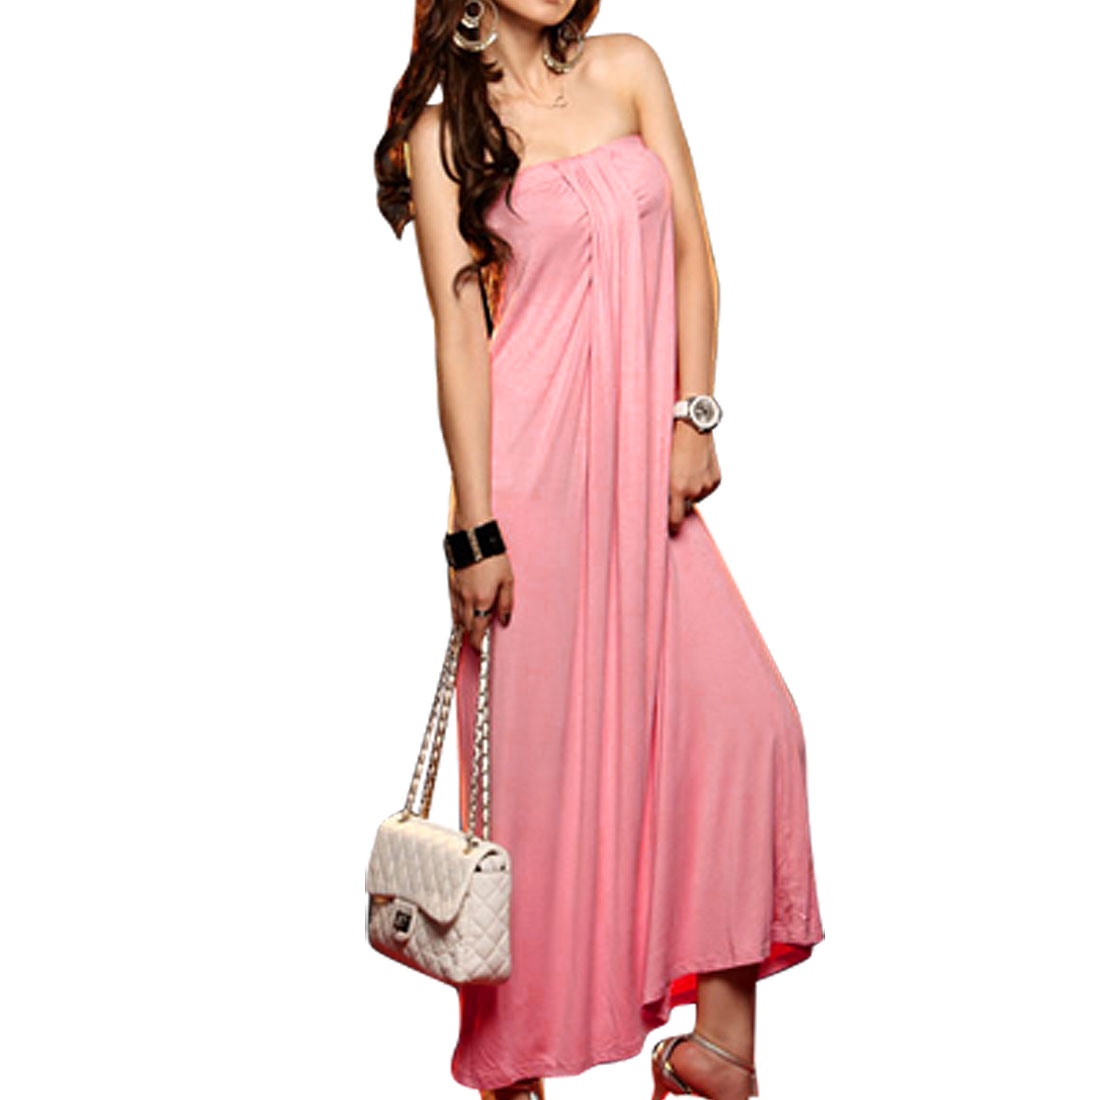 Elastic Top Pink Strapless Tube Dress XS for Ladies